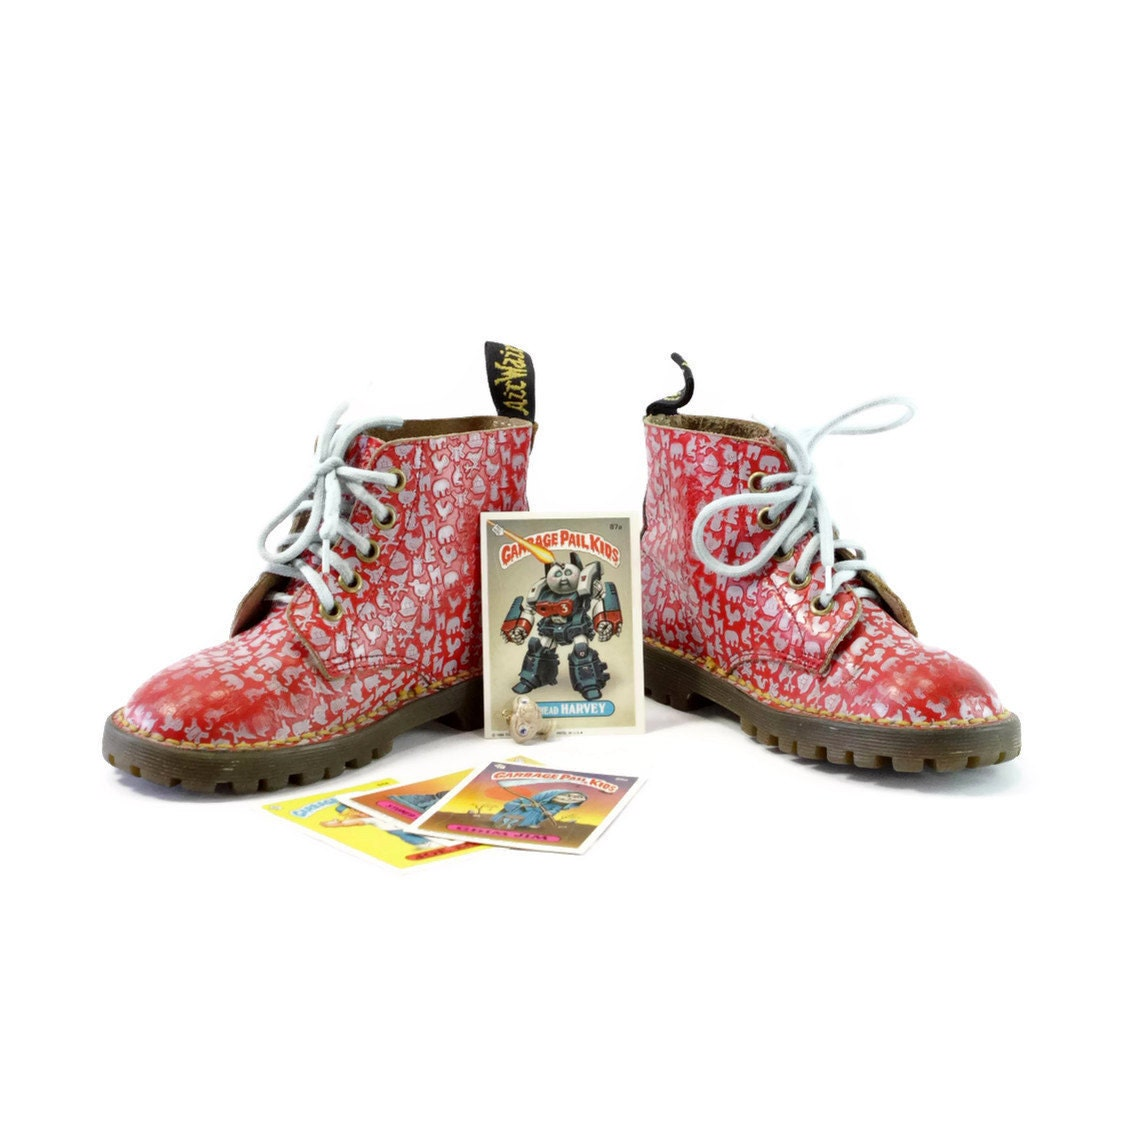 Baby Docs: Painfully Cute vintage Combat Boots for Kids.